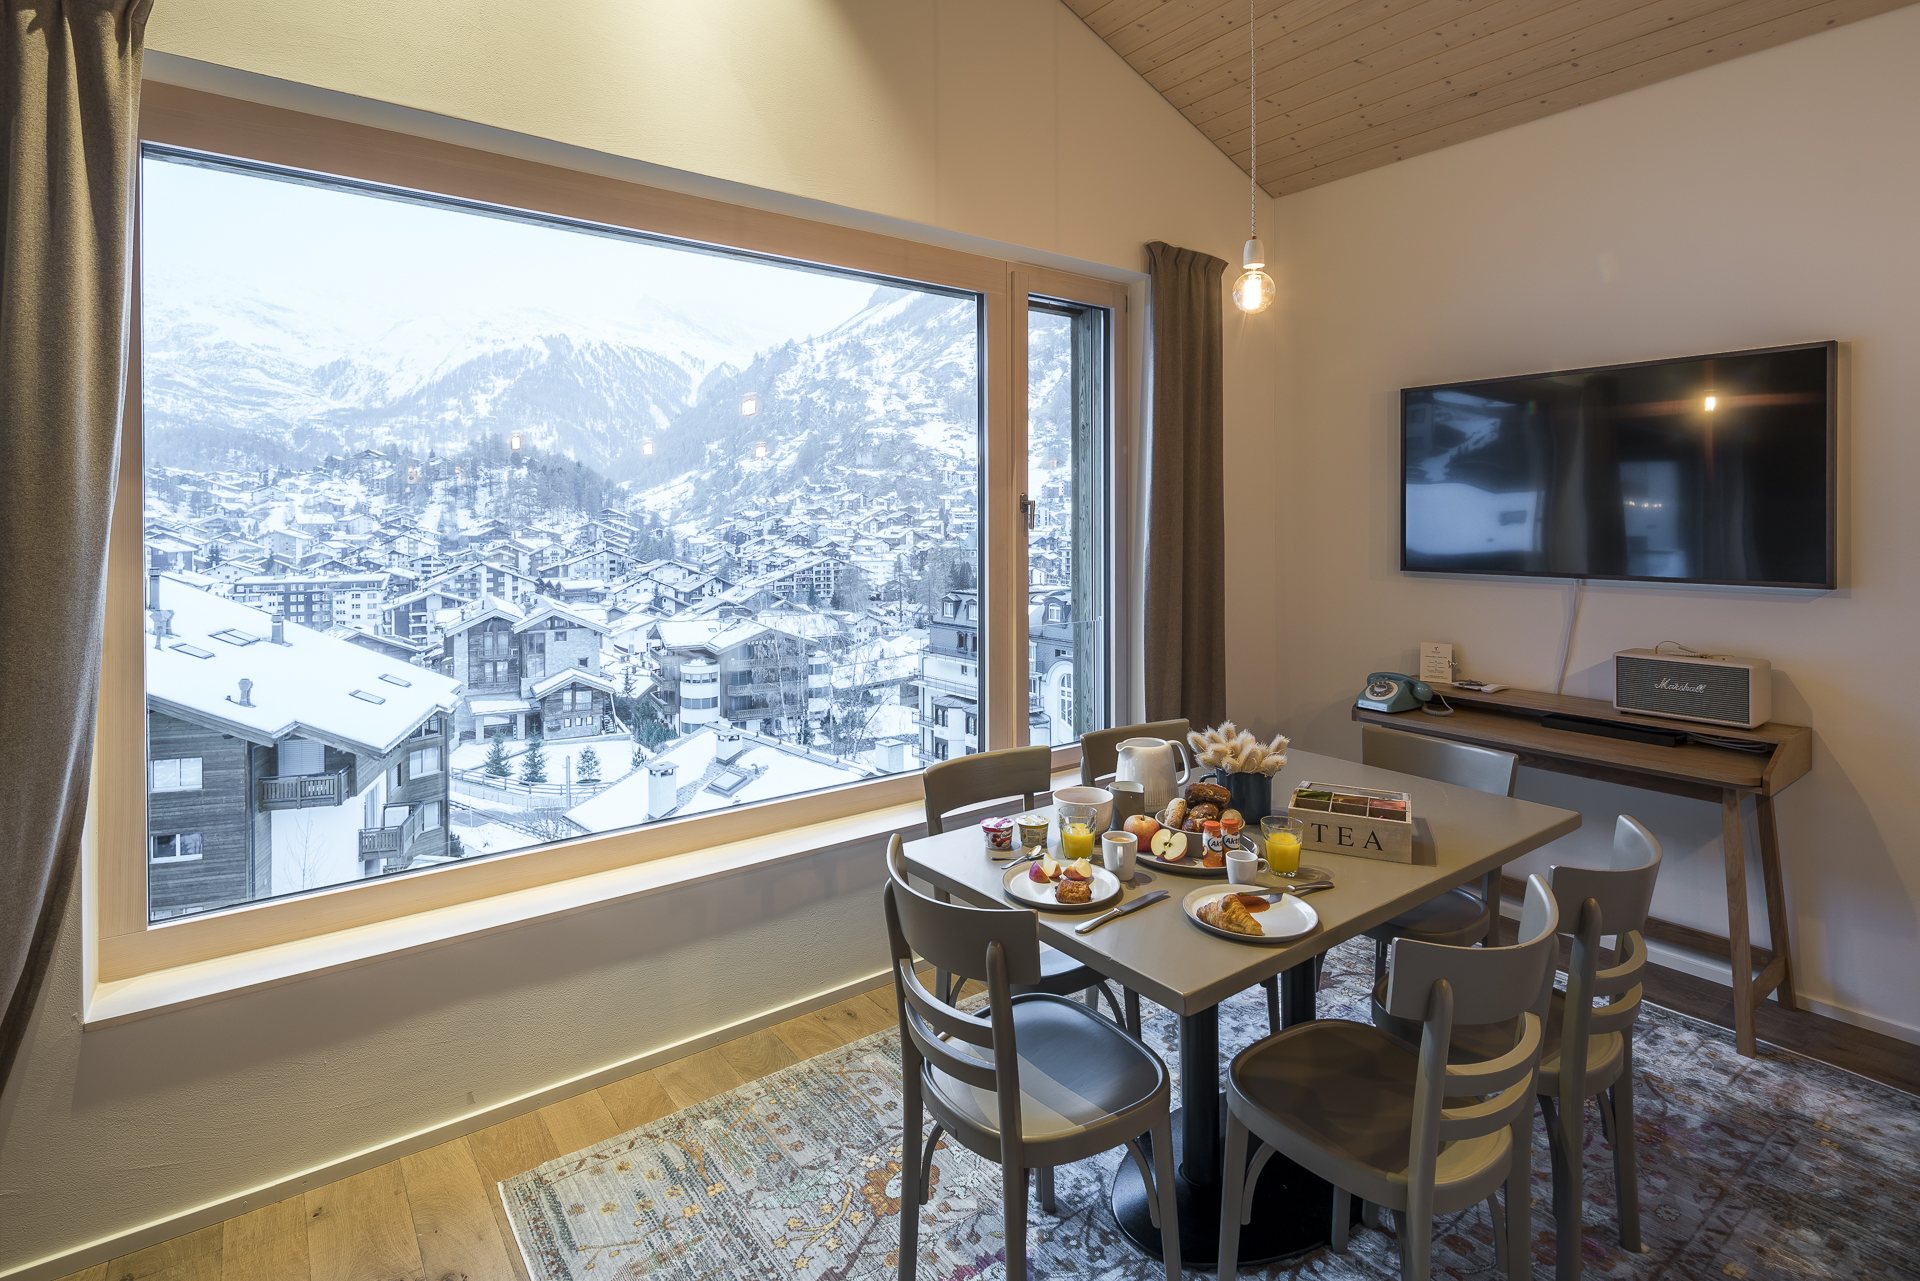 Overlook Lodge Apartment Zermatt